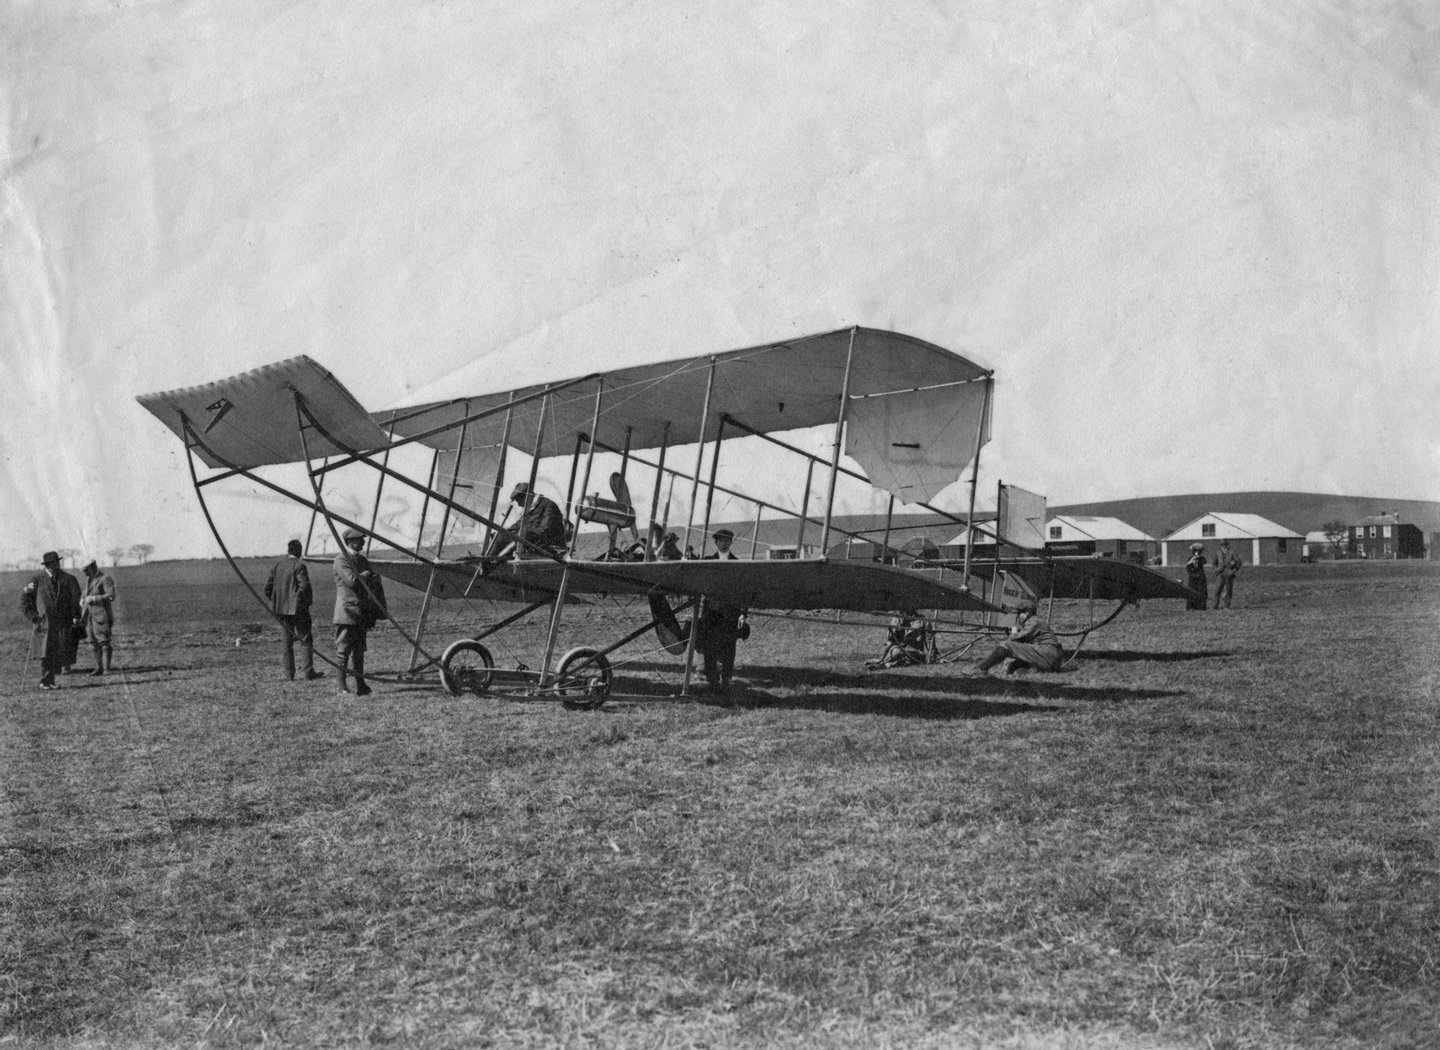 English motoring and aviation pioneer Charles Rolls (1877 - 1910) in his French-built Sommer 1910 biplane, at Eastchurch airfield on the Isle of Sheppey in Kent, 2nd April 1910. (Photo by Topical Press Agency/Hulton Archive/GettyImages)